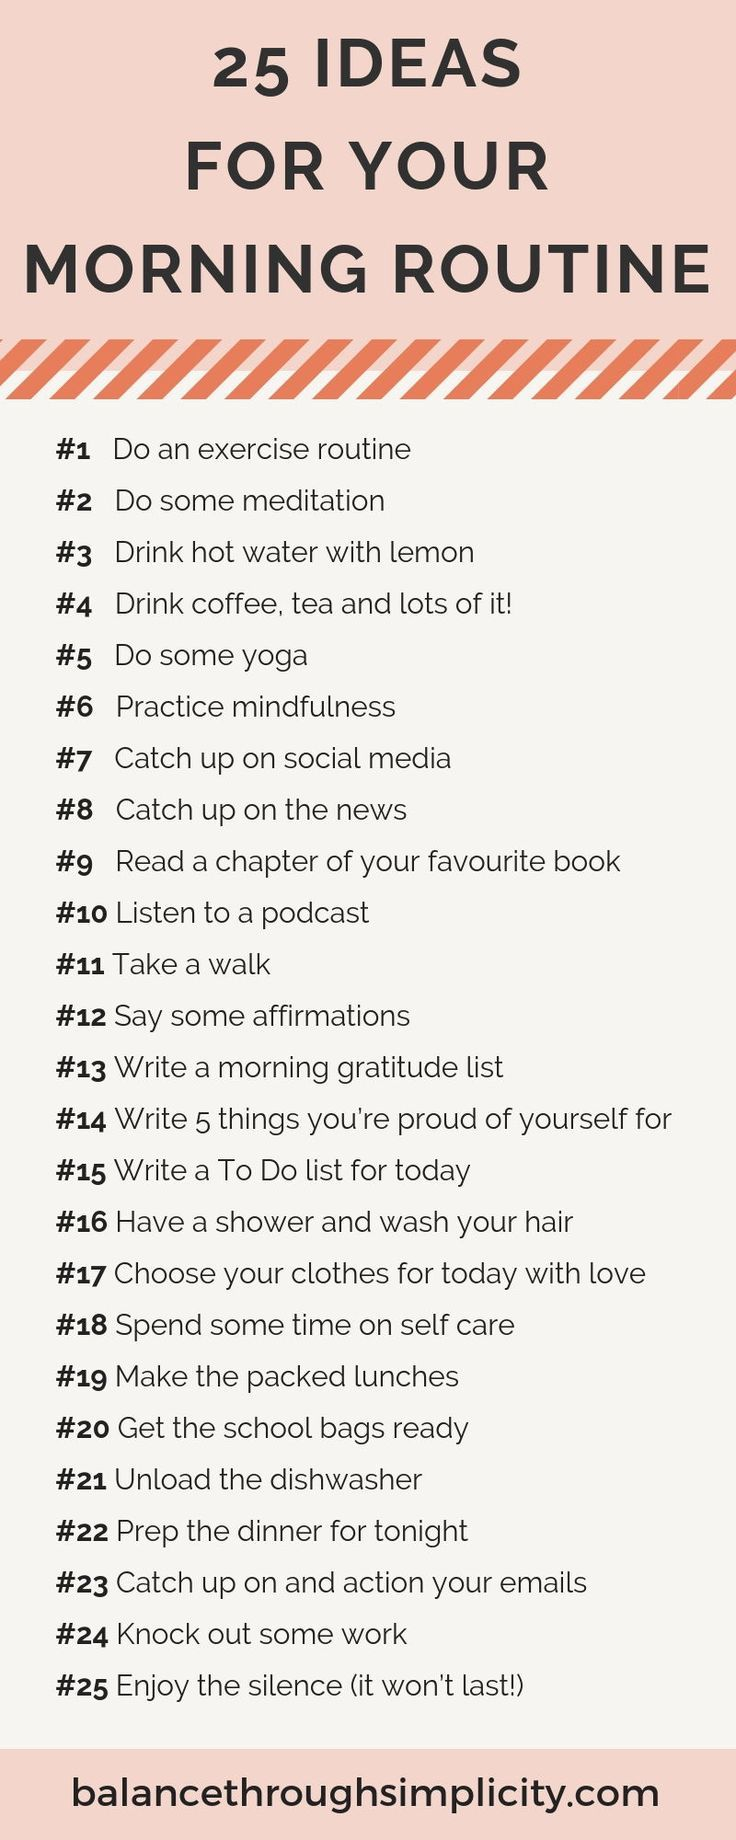 If you're looking for ideas on how to create a morning routine that really sets you up for the day then check out this post on 25 ideas for your morning routine. Use the time to plan and prepare your body and mind for the day ahead with a structured but flexible morning routine that really supports you.#morningroutine #morning#intentionalliving #intentional#simpleliving #simplify#timemanagement #productivity #morningroutine